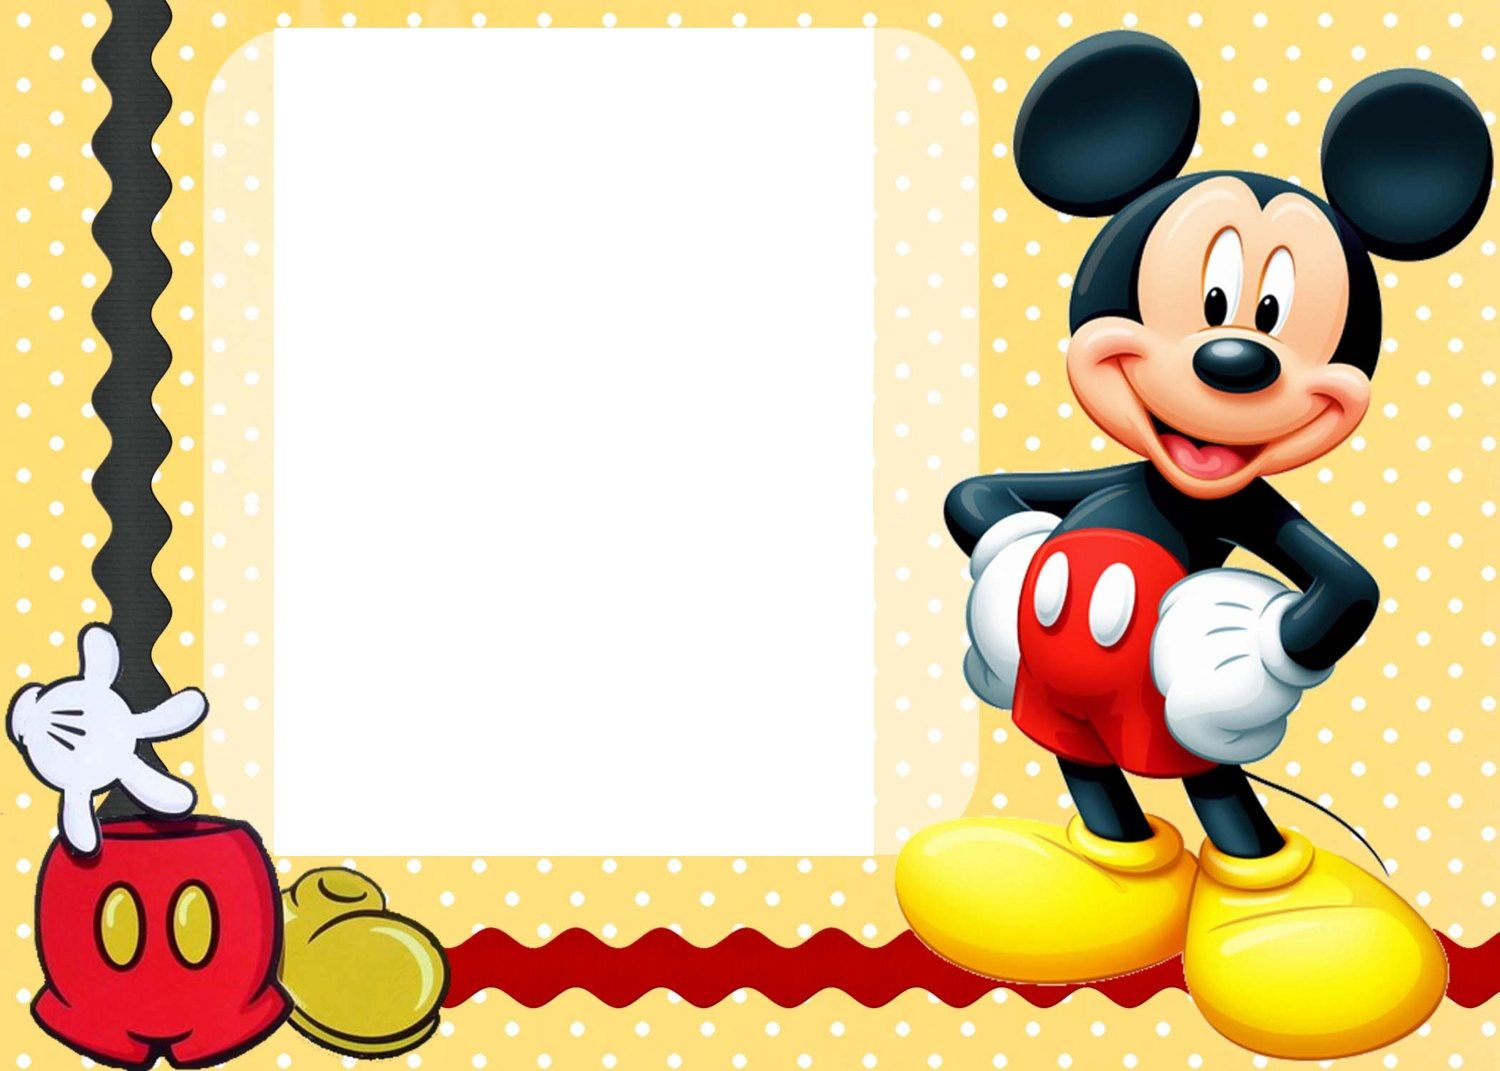 Mickey Mouse Clubhouse Invitation Template Free Download - Birthday invitation cards for free download